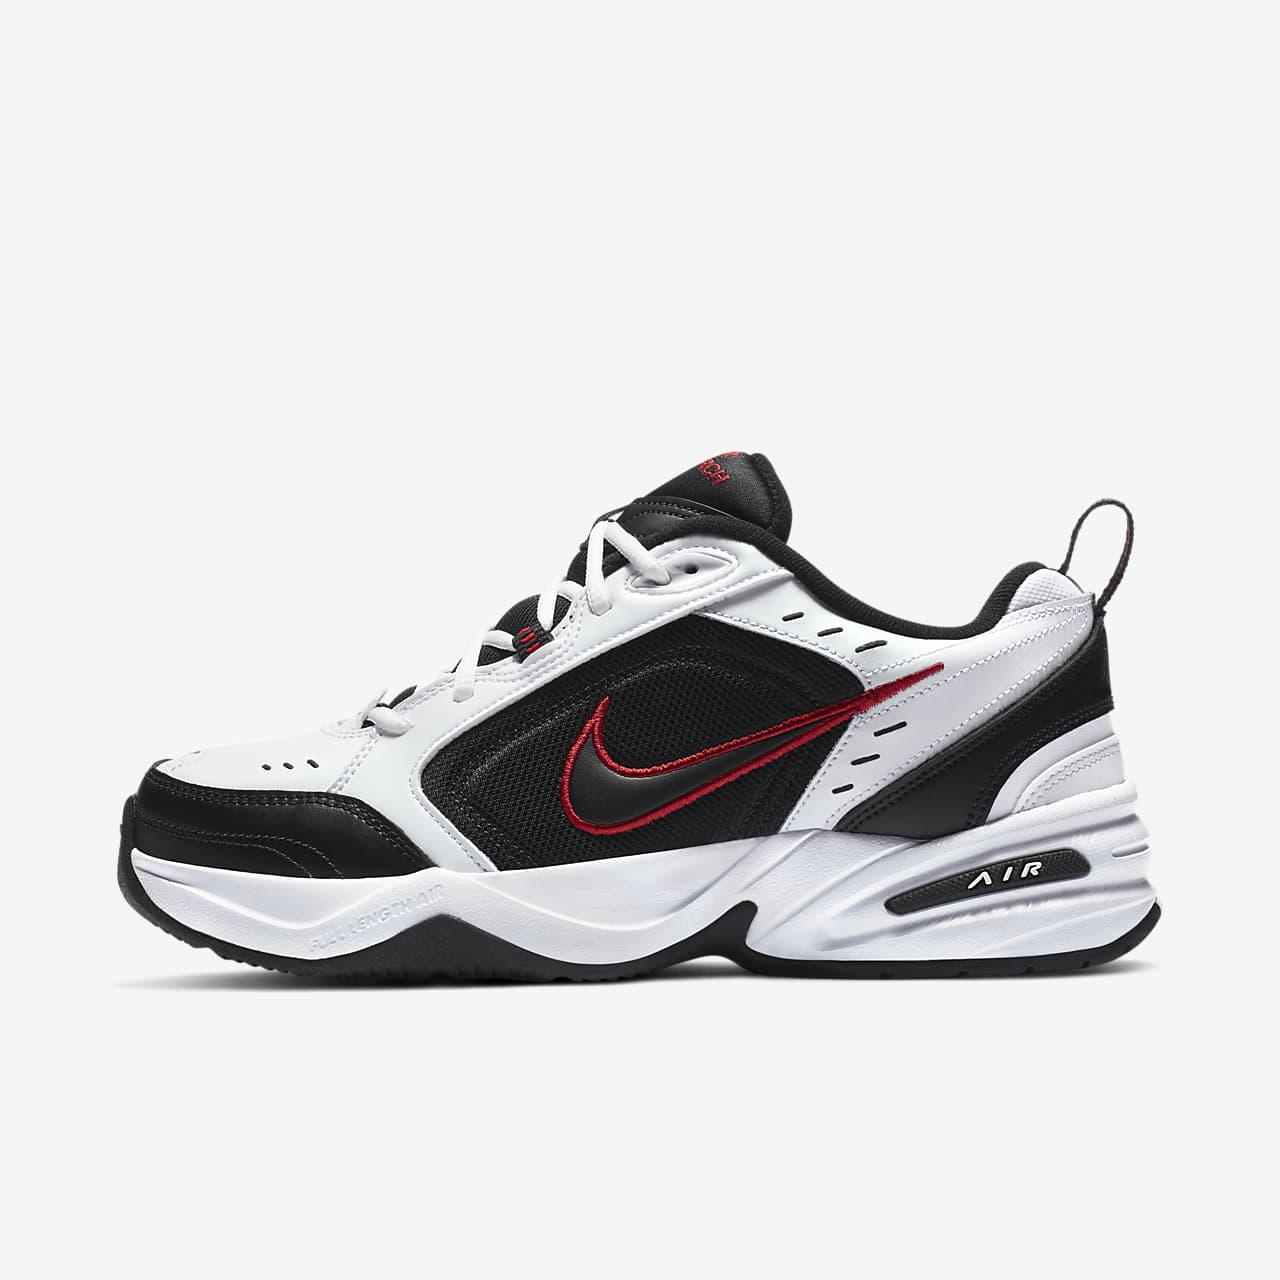 ebf6cb59049 Nike Air Monarch IV Lifestyle Gym Shoe. Nike.com BE